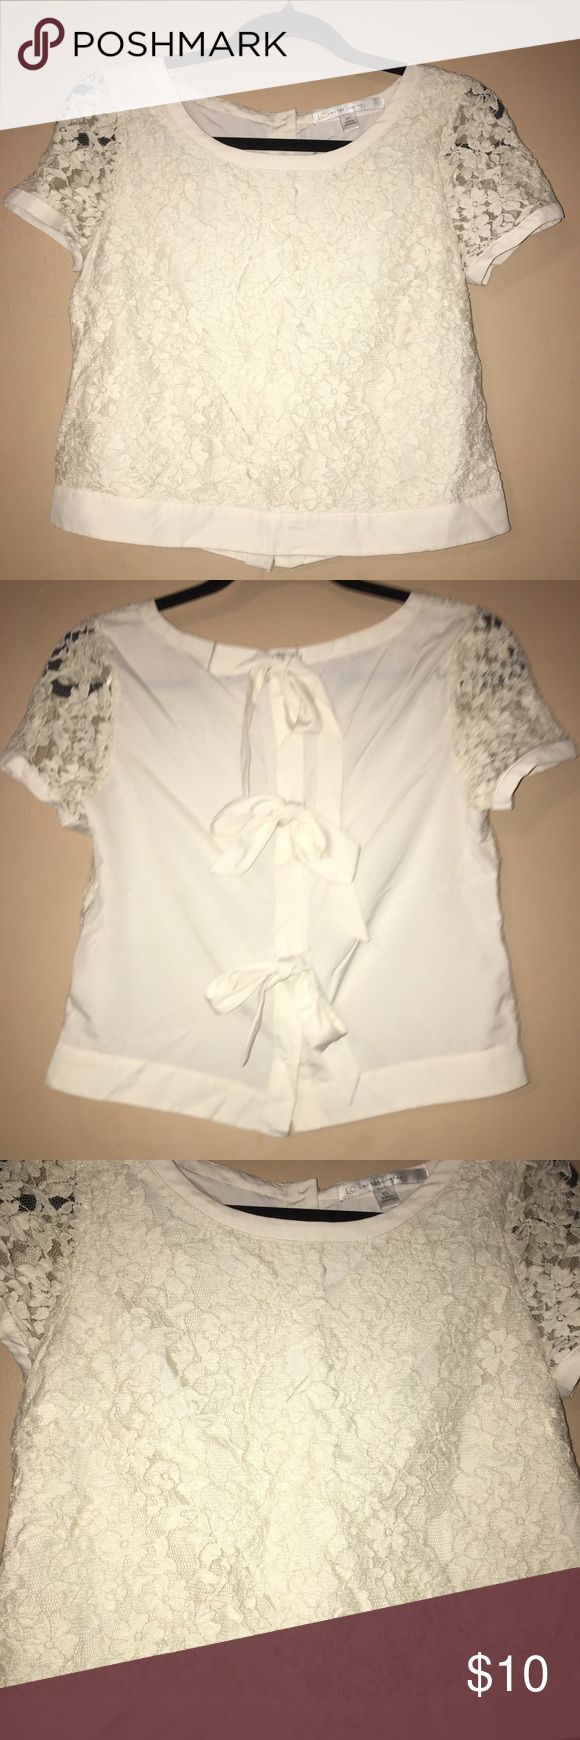 Lauren Conrad Bow Back Shirt Short sleeve shirt in a lace ivory color with bows in the back. You can tie the bows however you'd like, I tried tying them but I don't really know how to. It's in perfect condition! It looks like it was never worn. Brand is Lauren Conrad and size is extra small  Bundle with my other listings to save on shipping! LC Lauren Conrad Tops Blouses